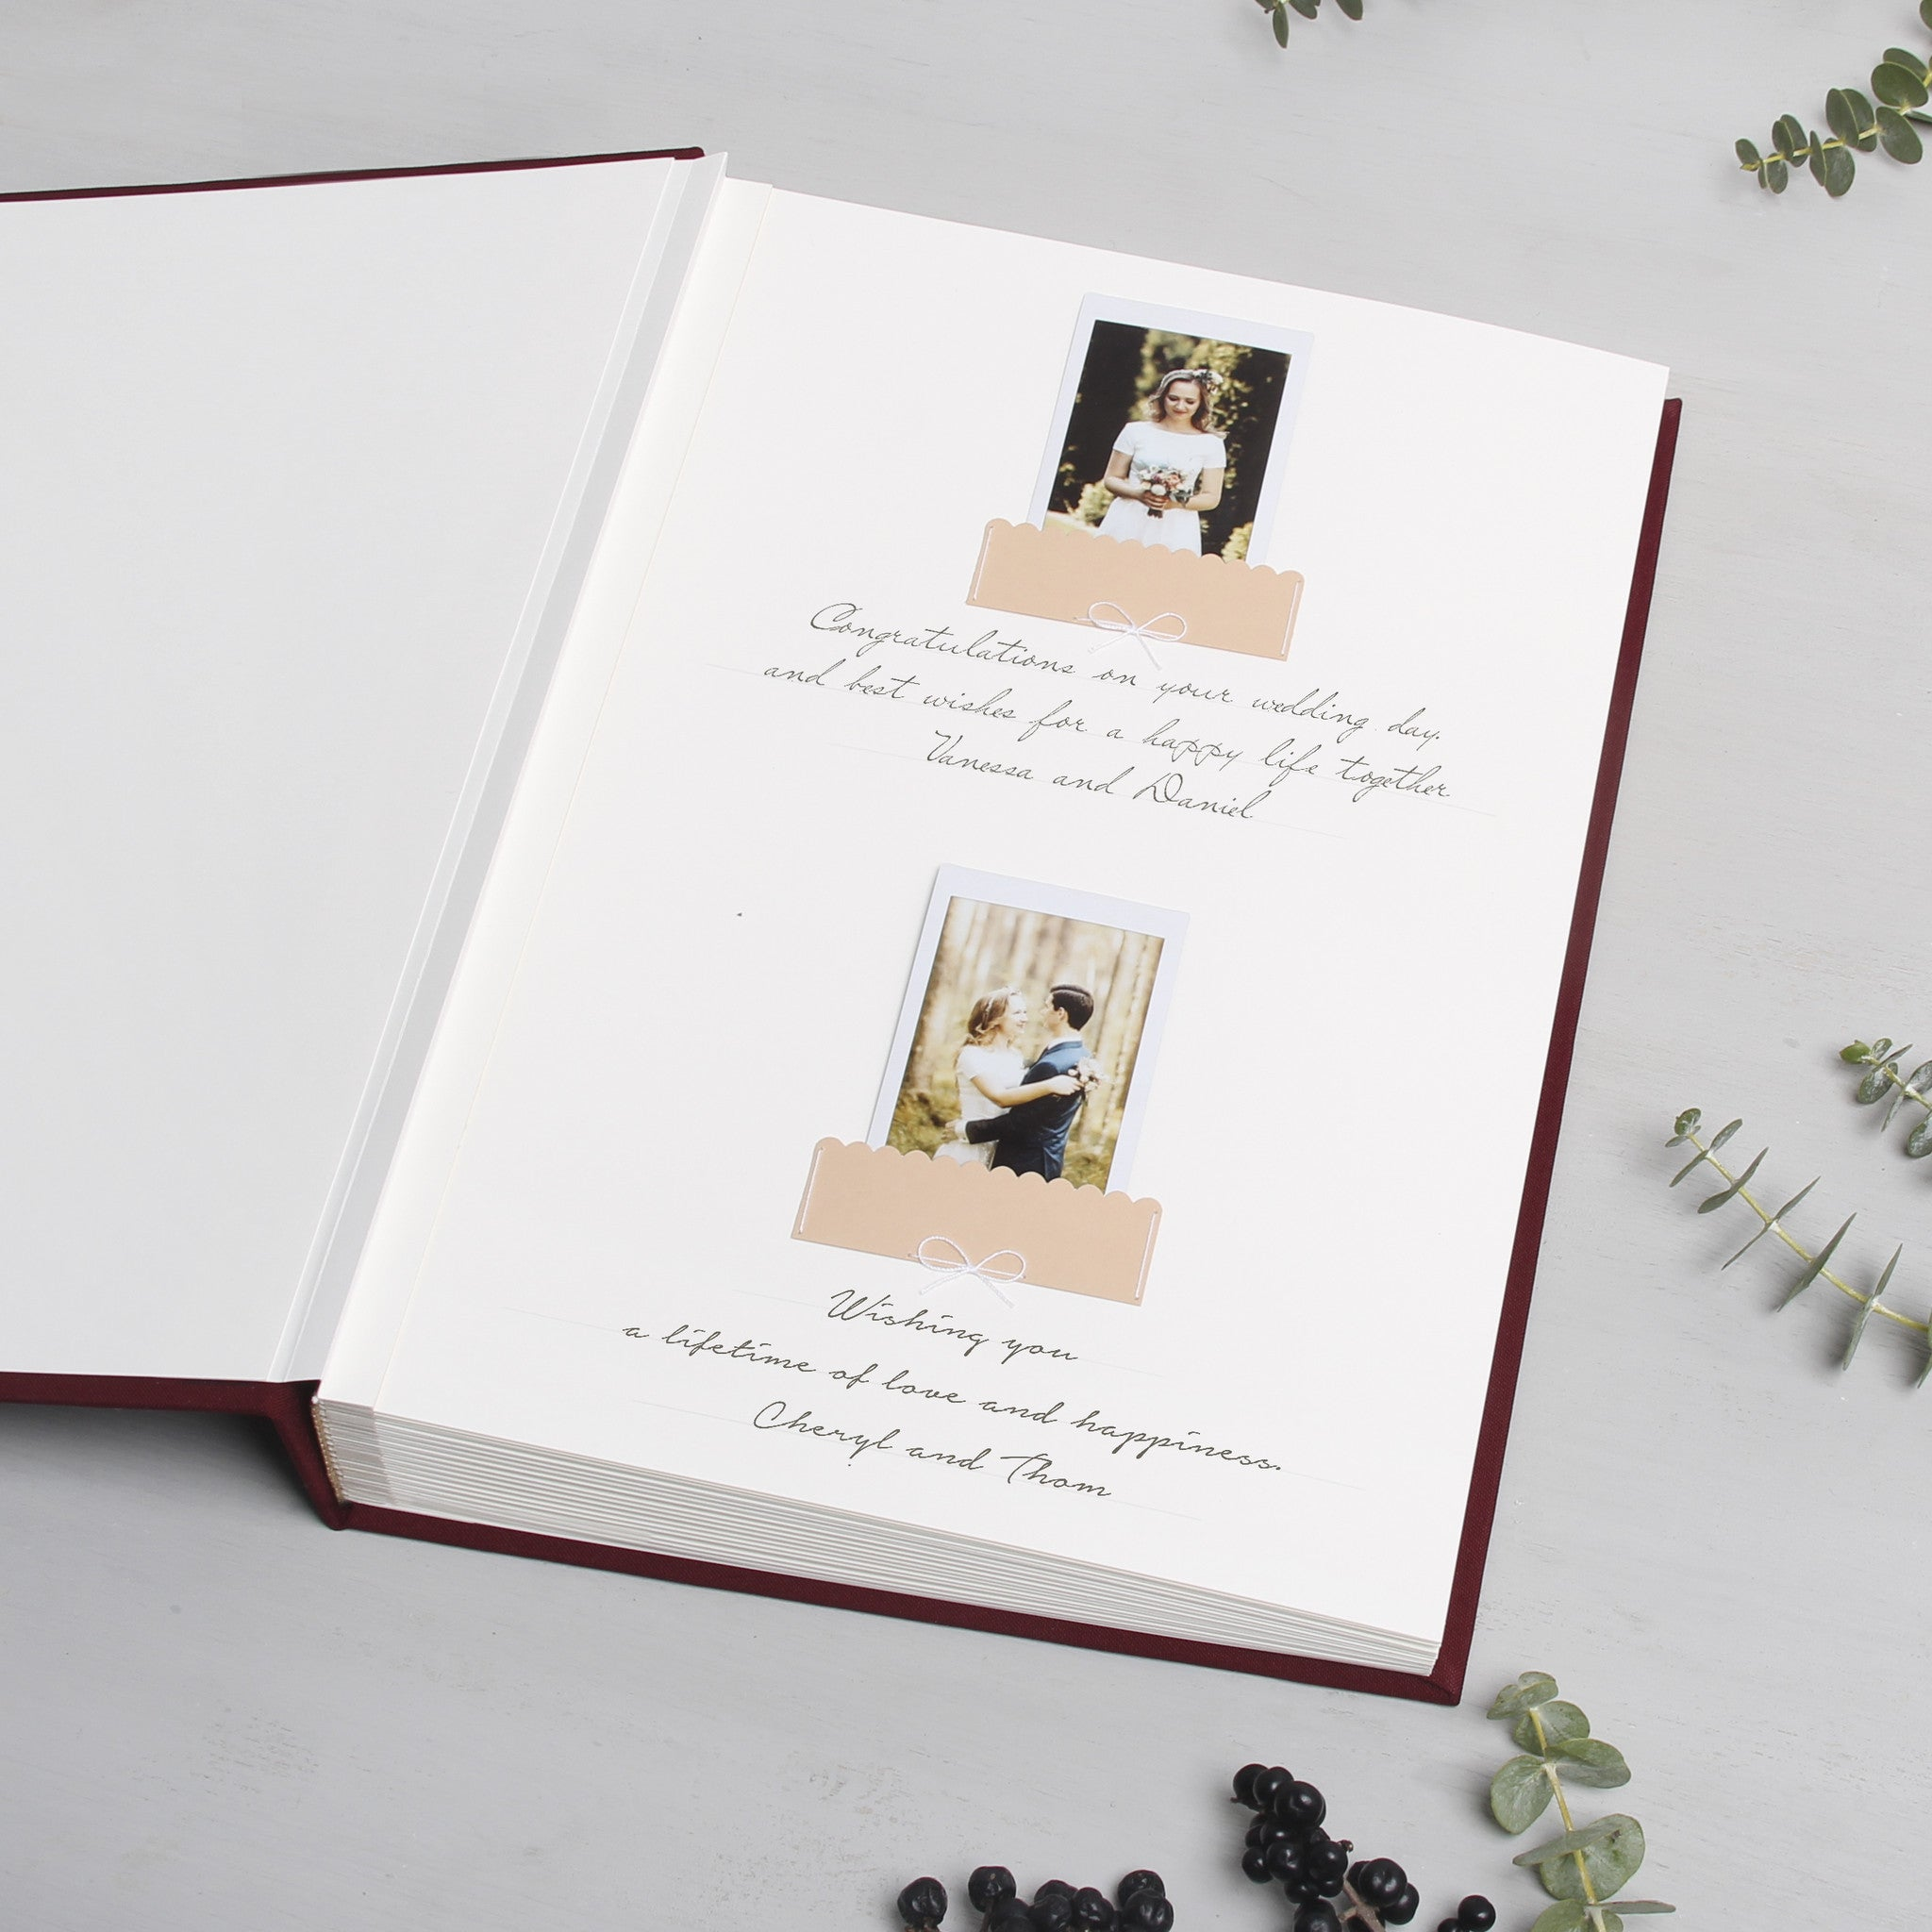 Instant Wedding Guest Book Album Marsala with Gold Lettering by Liumy - Liumy